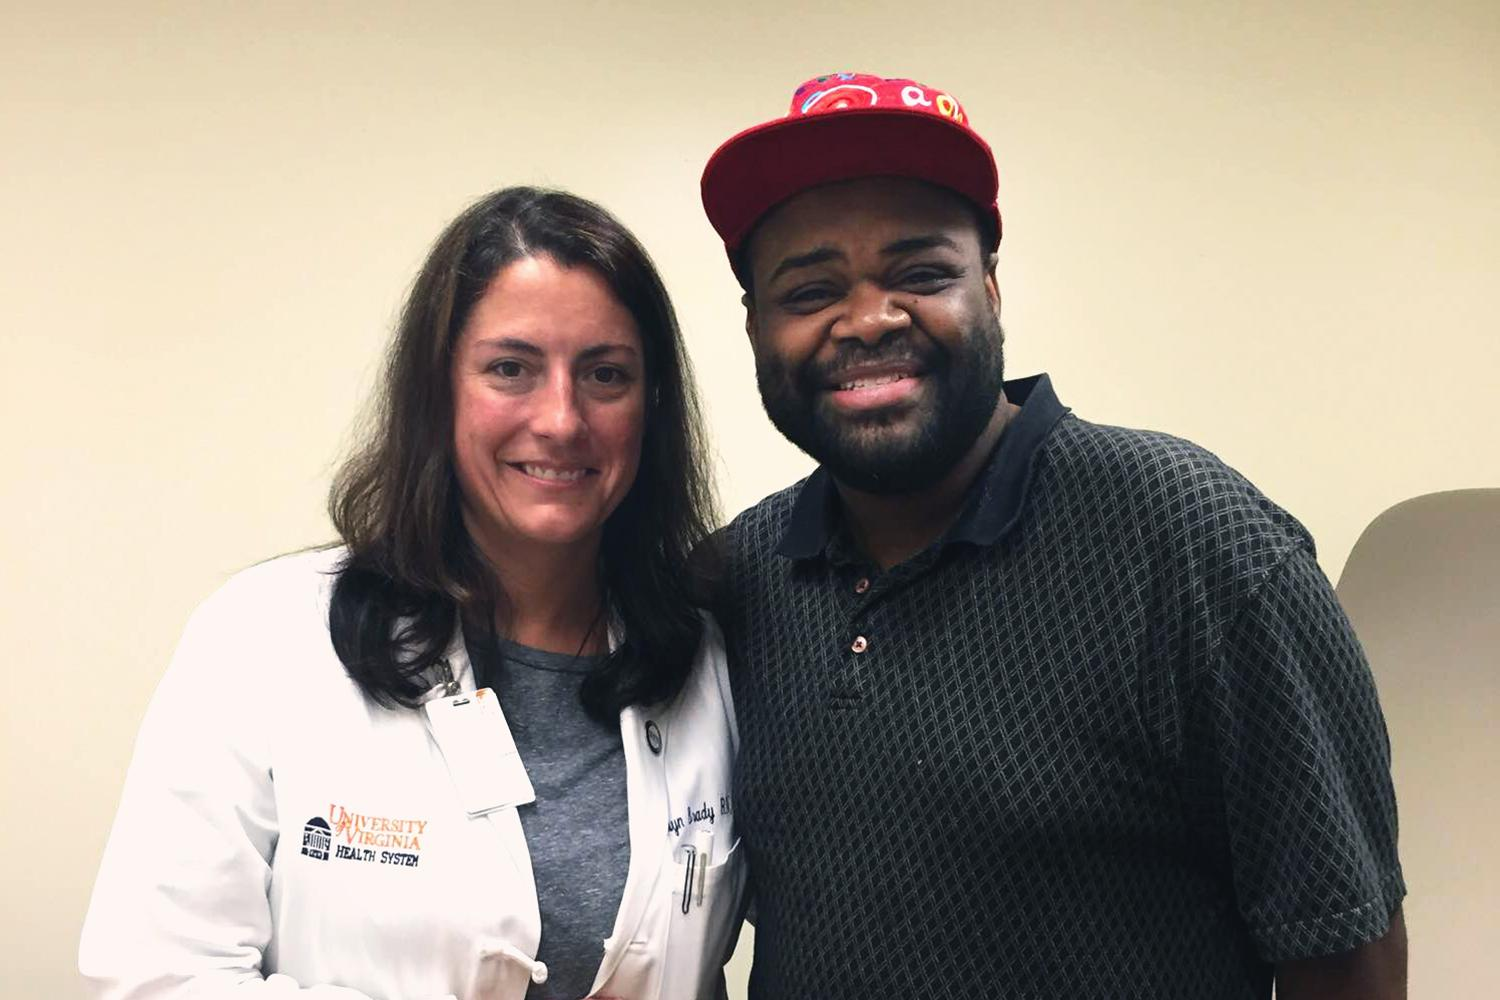 Nurse practitioner Carolyn Brady meets with patient Jason Dent, who was able to attend his college graduation ceremony a few weeks after being treated for heart failure at the UVA Medical Center.